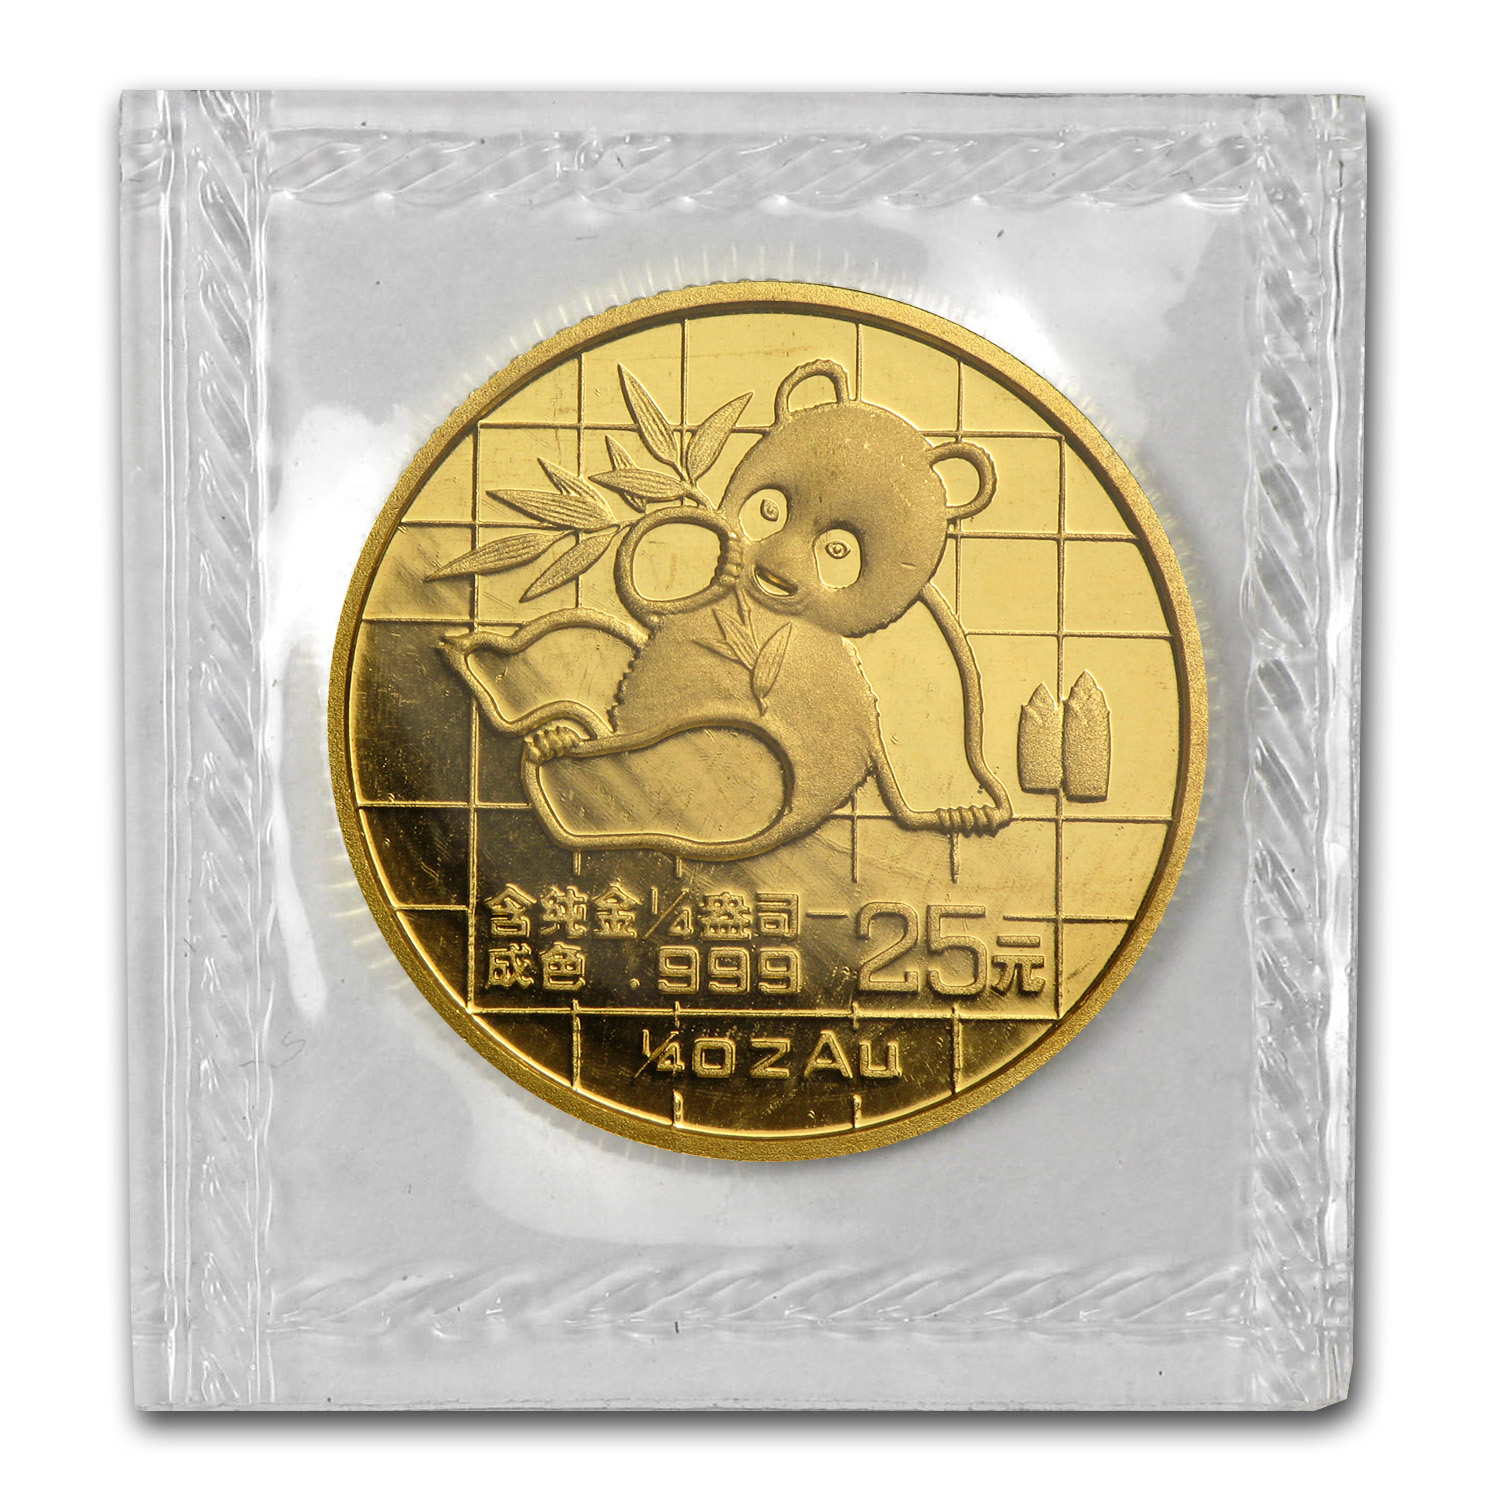 1989 (1/4 oz) Gold Chinese Pandas -Large Date (Sealed)